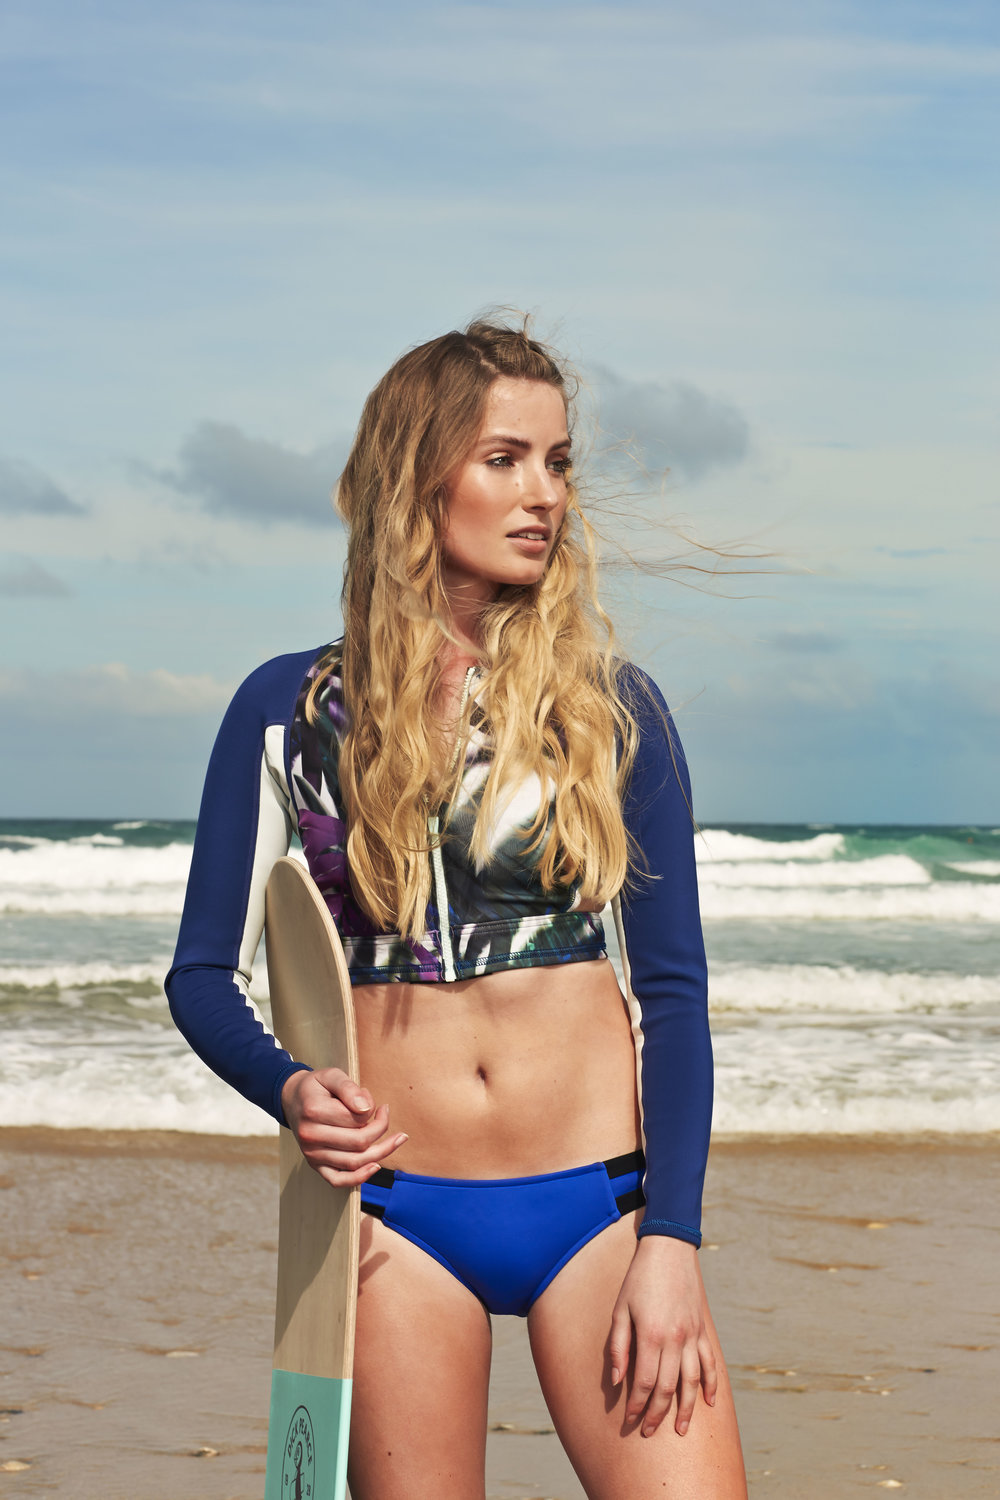 Roxy Rash guard, Seafolly bottoms and a Belly board by Dick Pearce